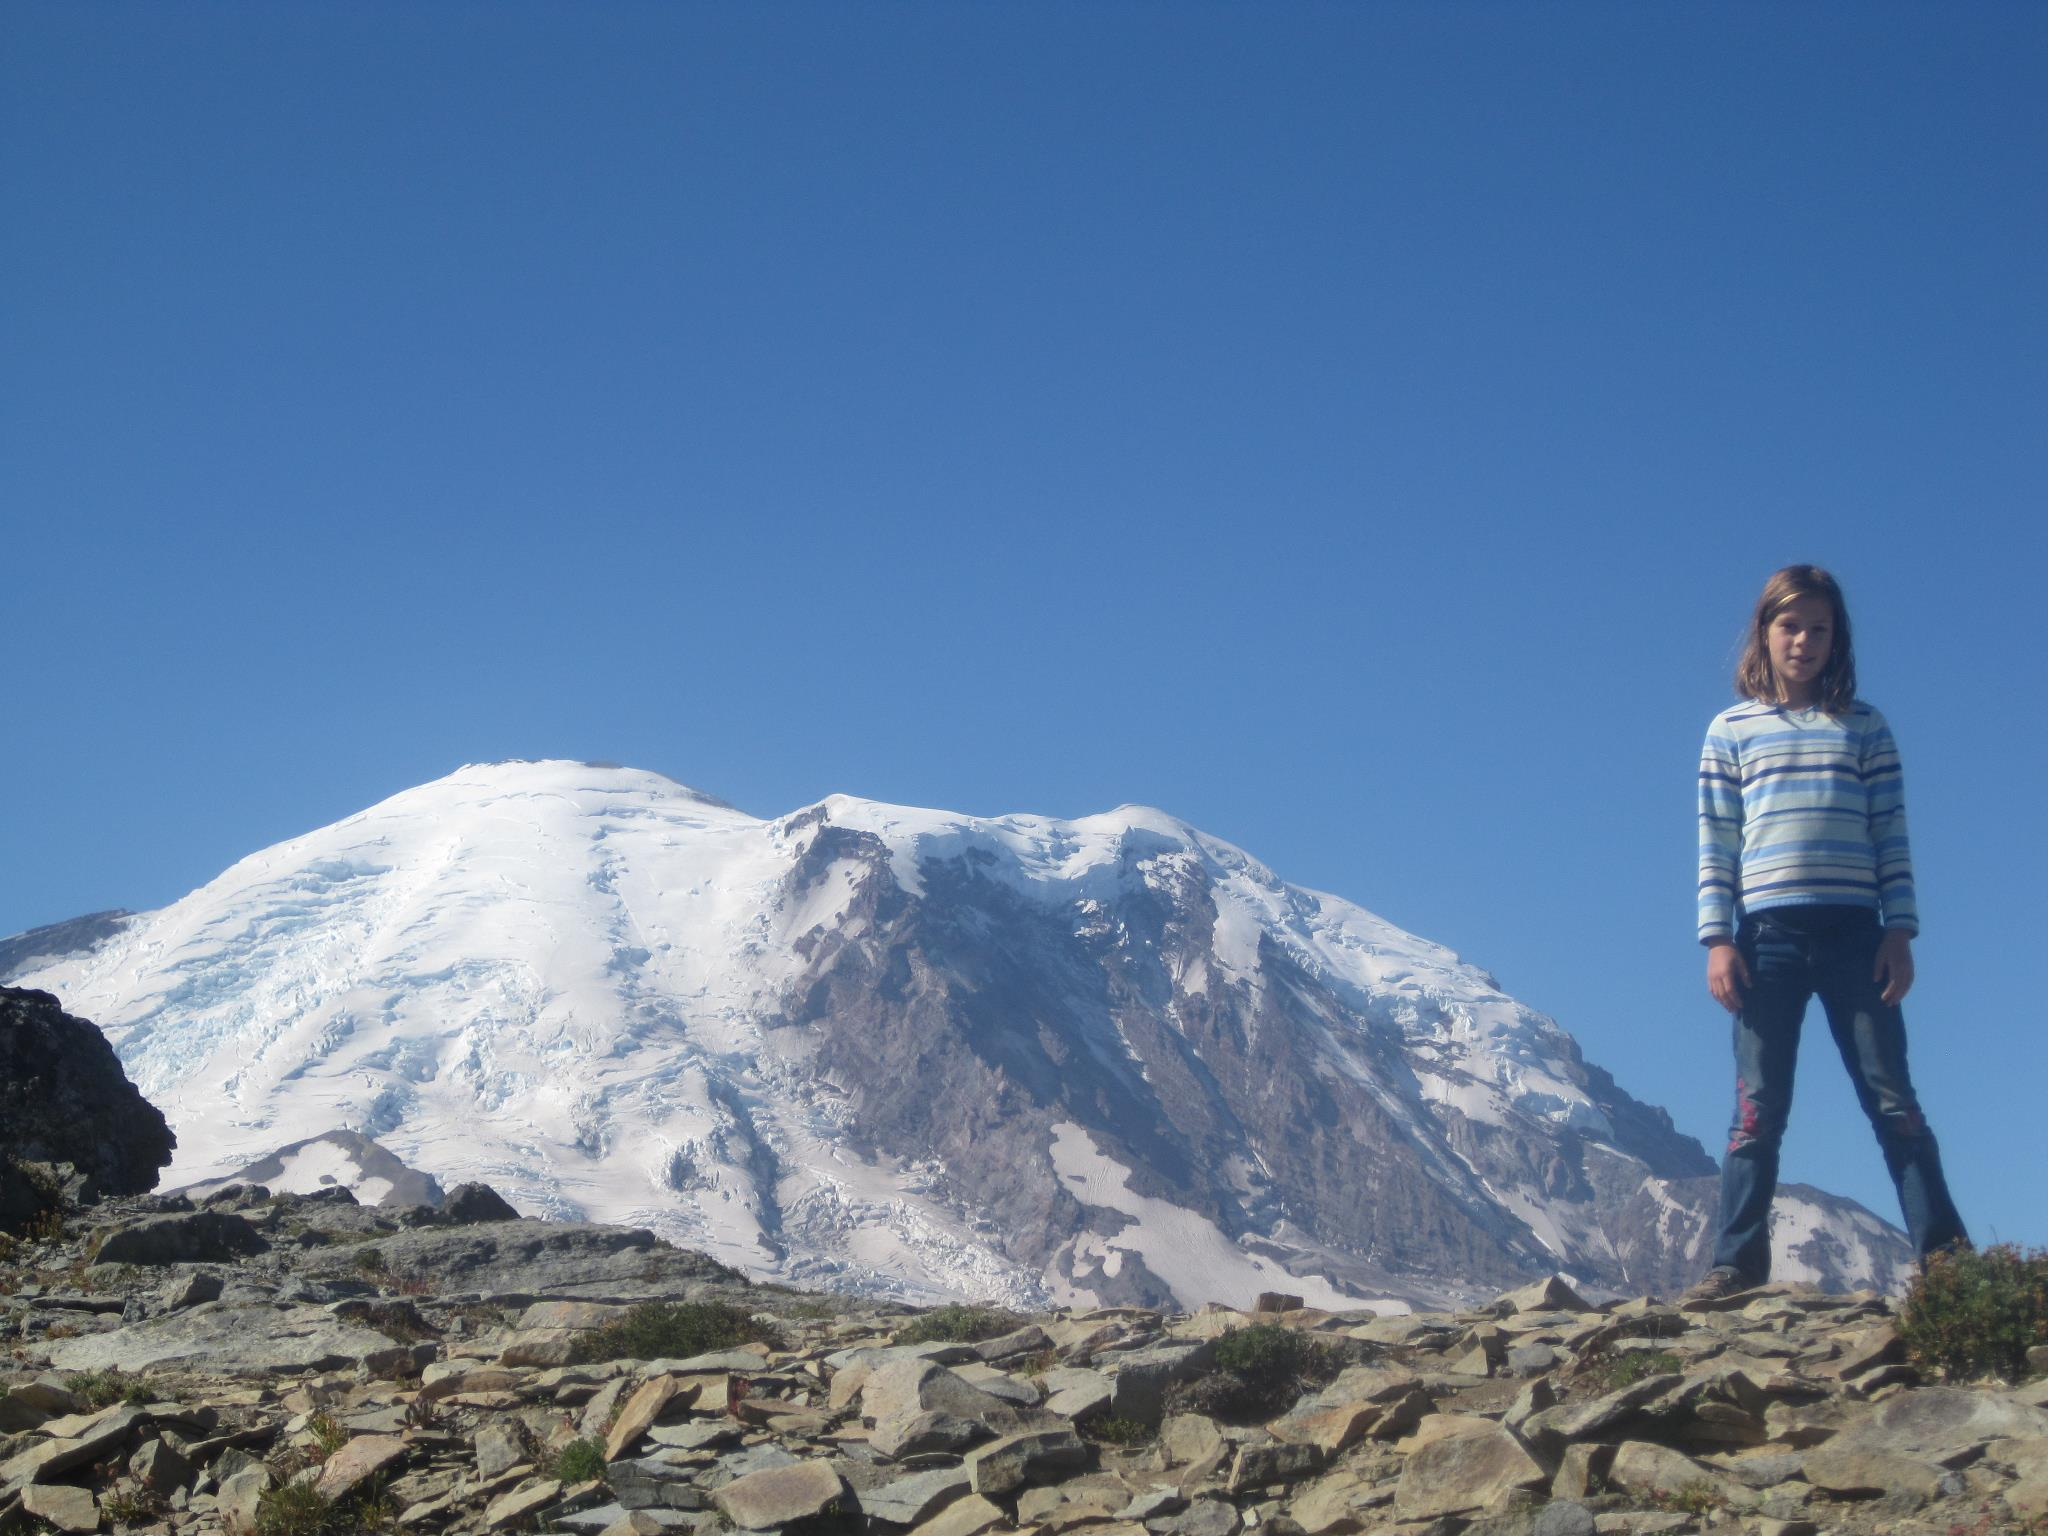 The author's daughter on a hike at Rainier. Credit: Jonathan Shipley